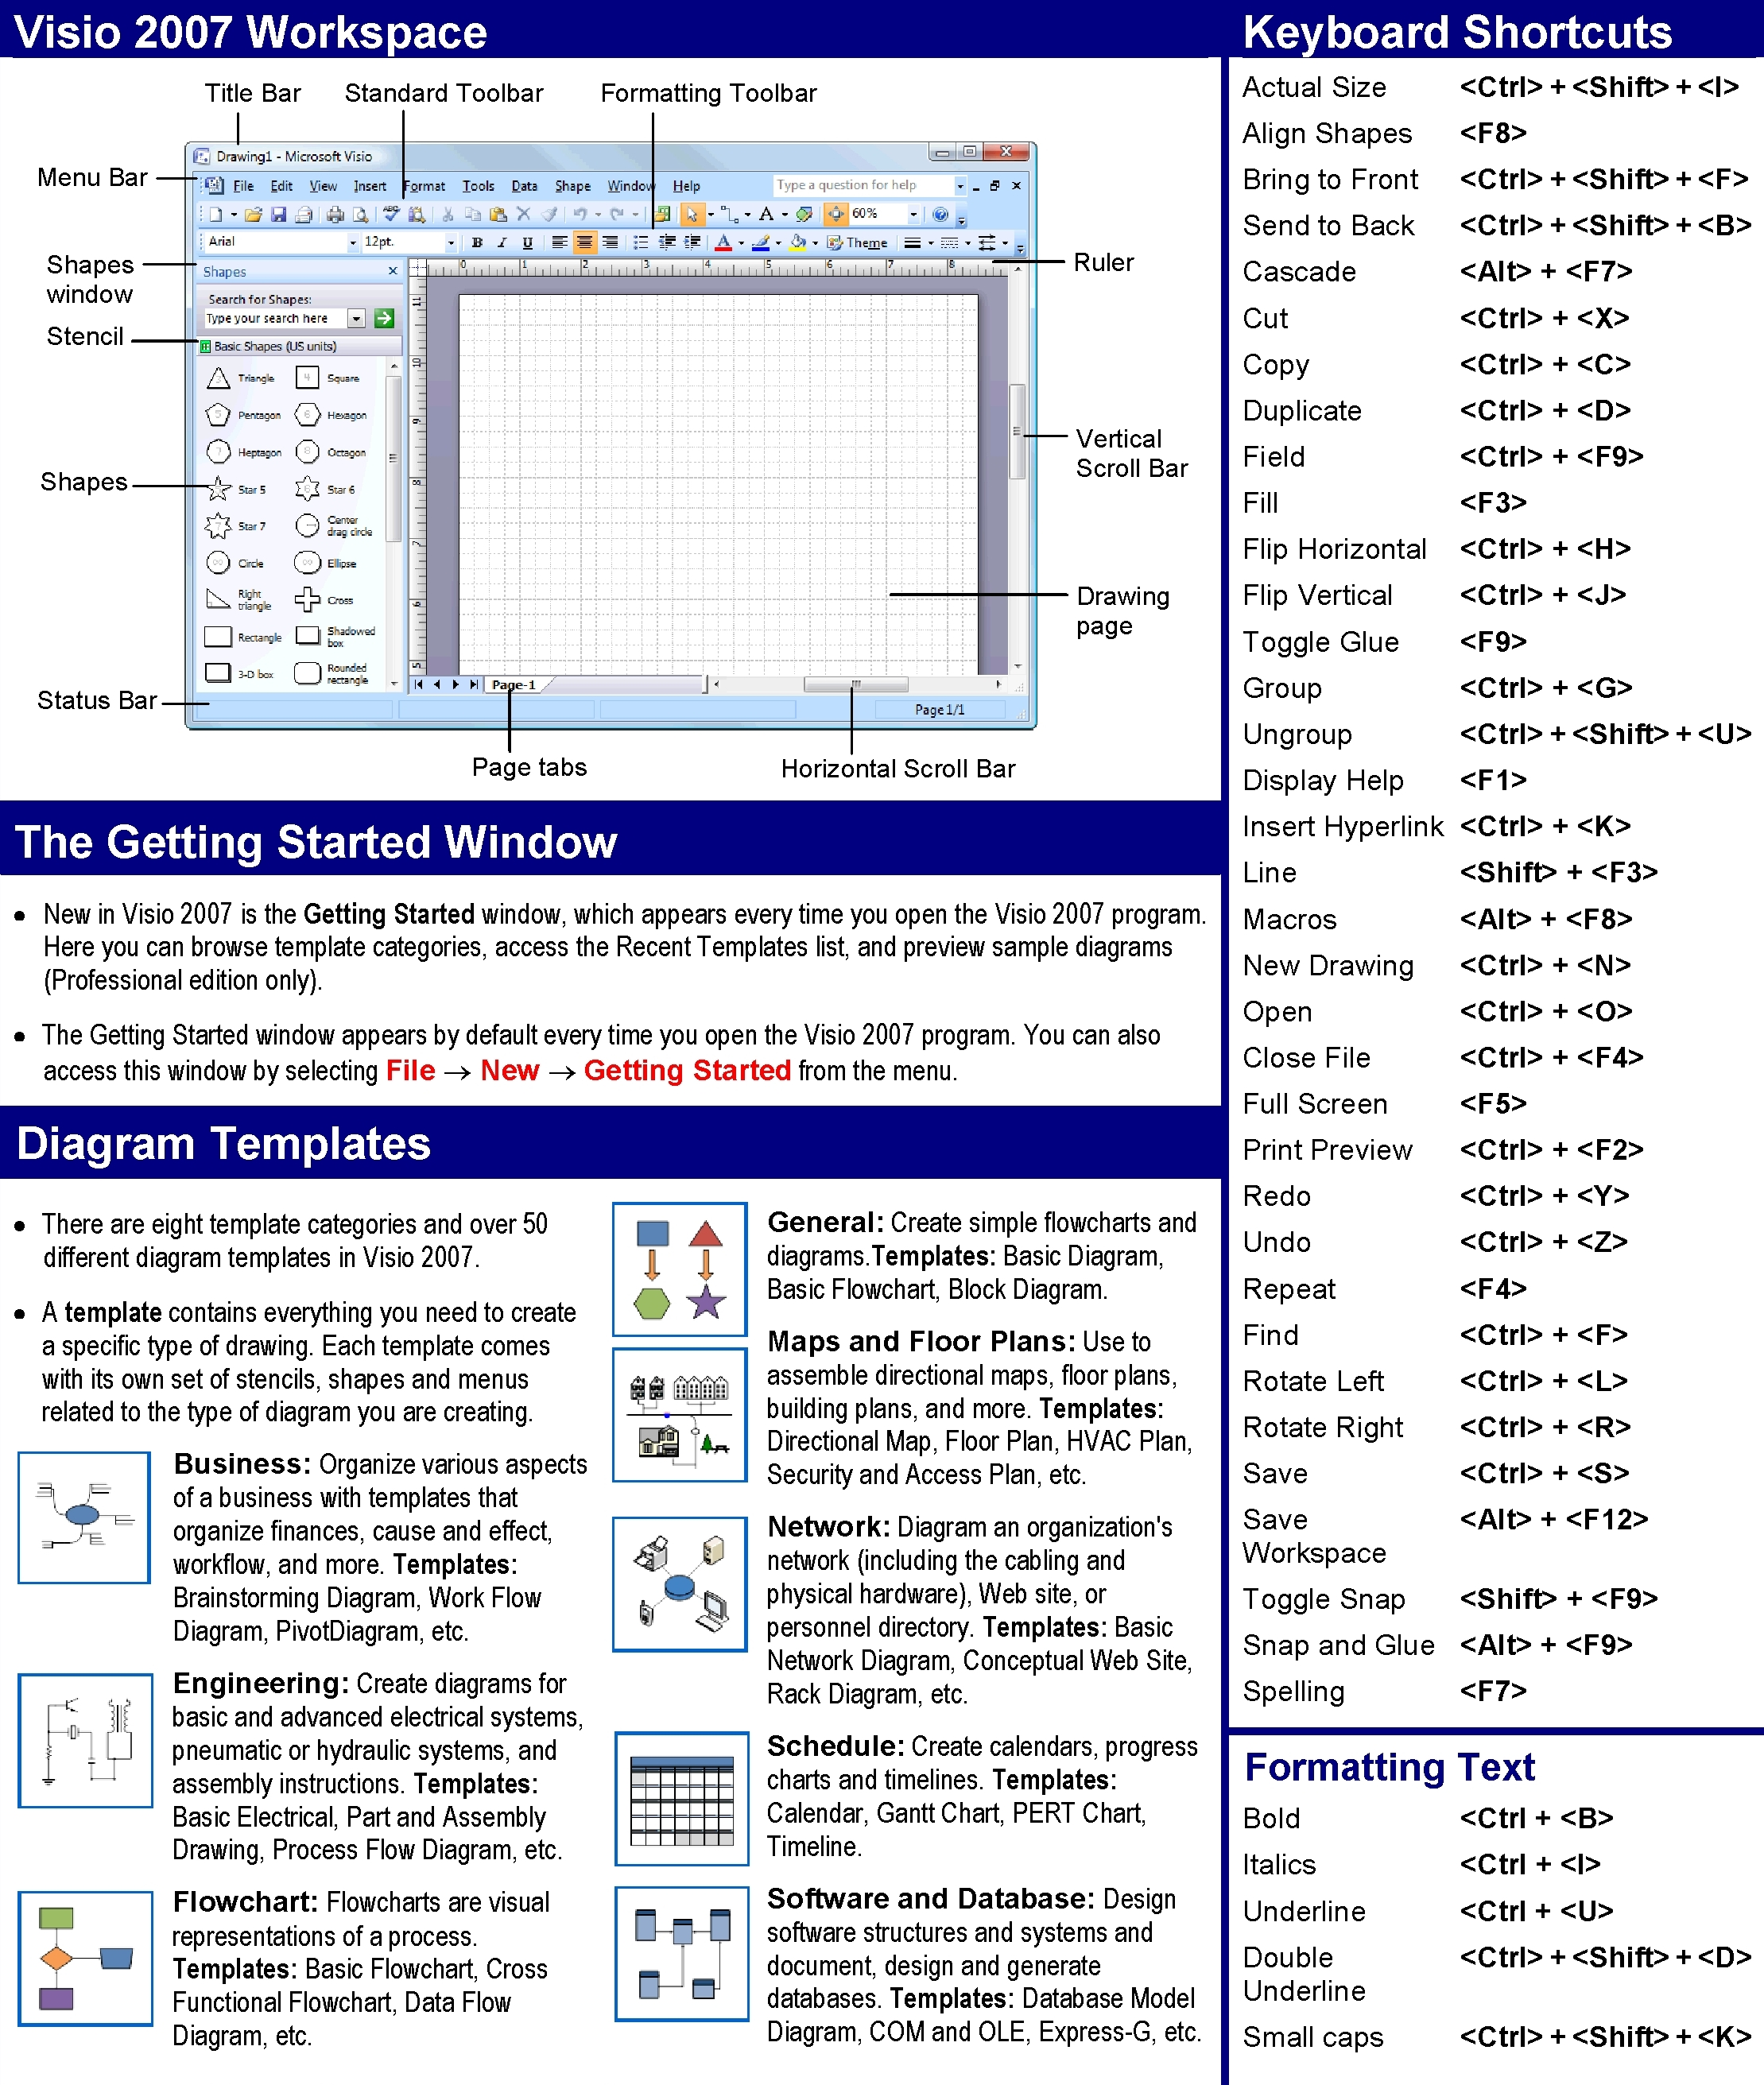 visio-2007-quick-reference-1.jpg